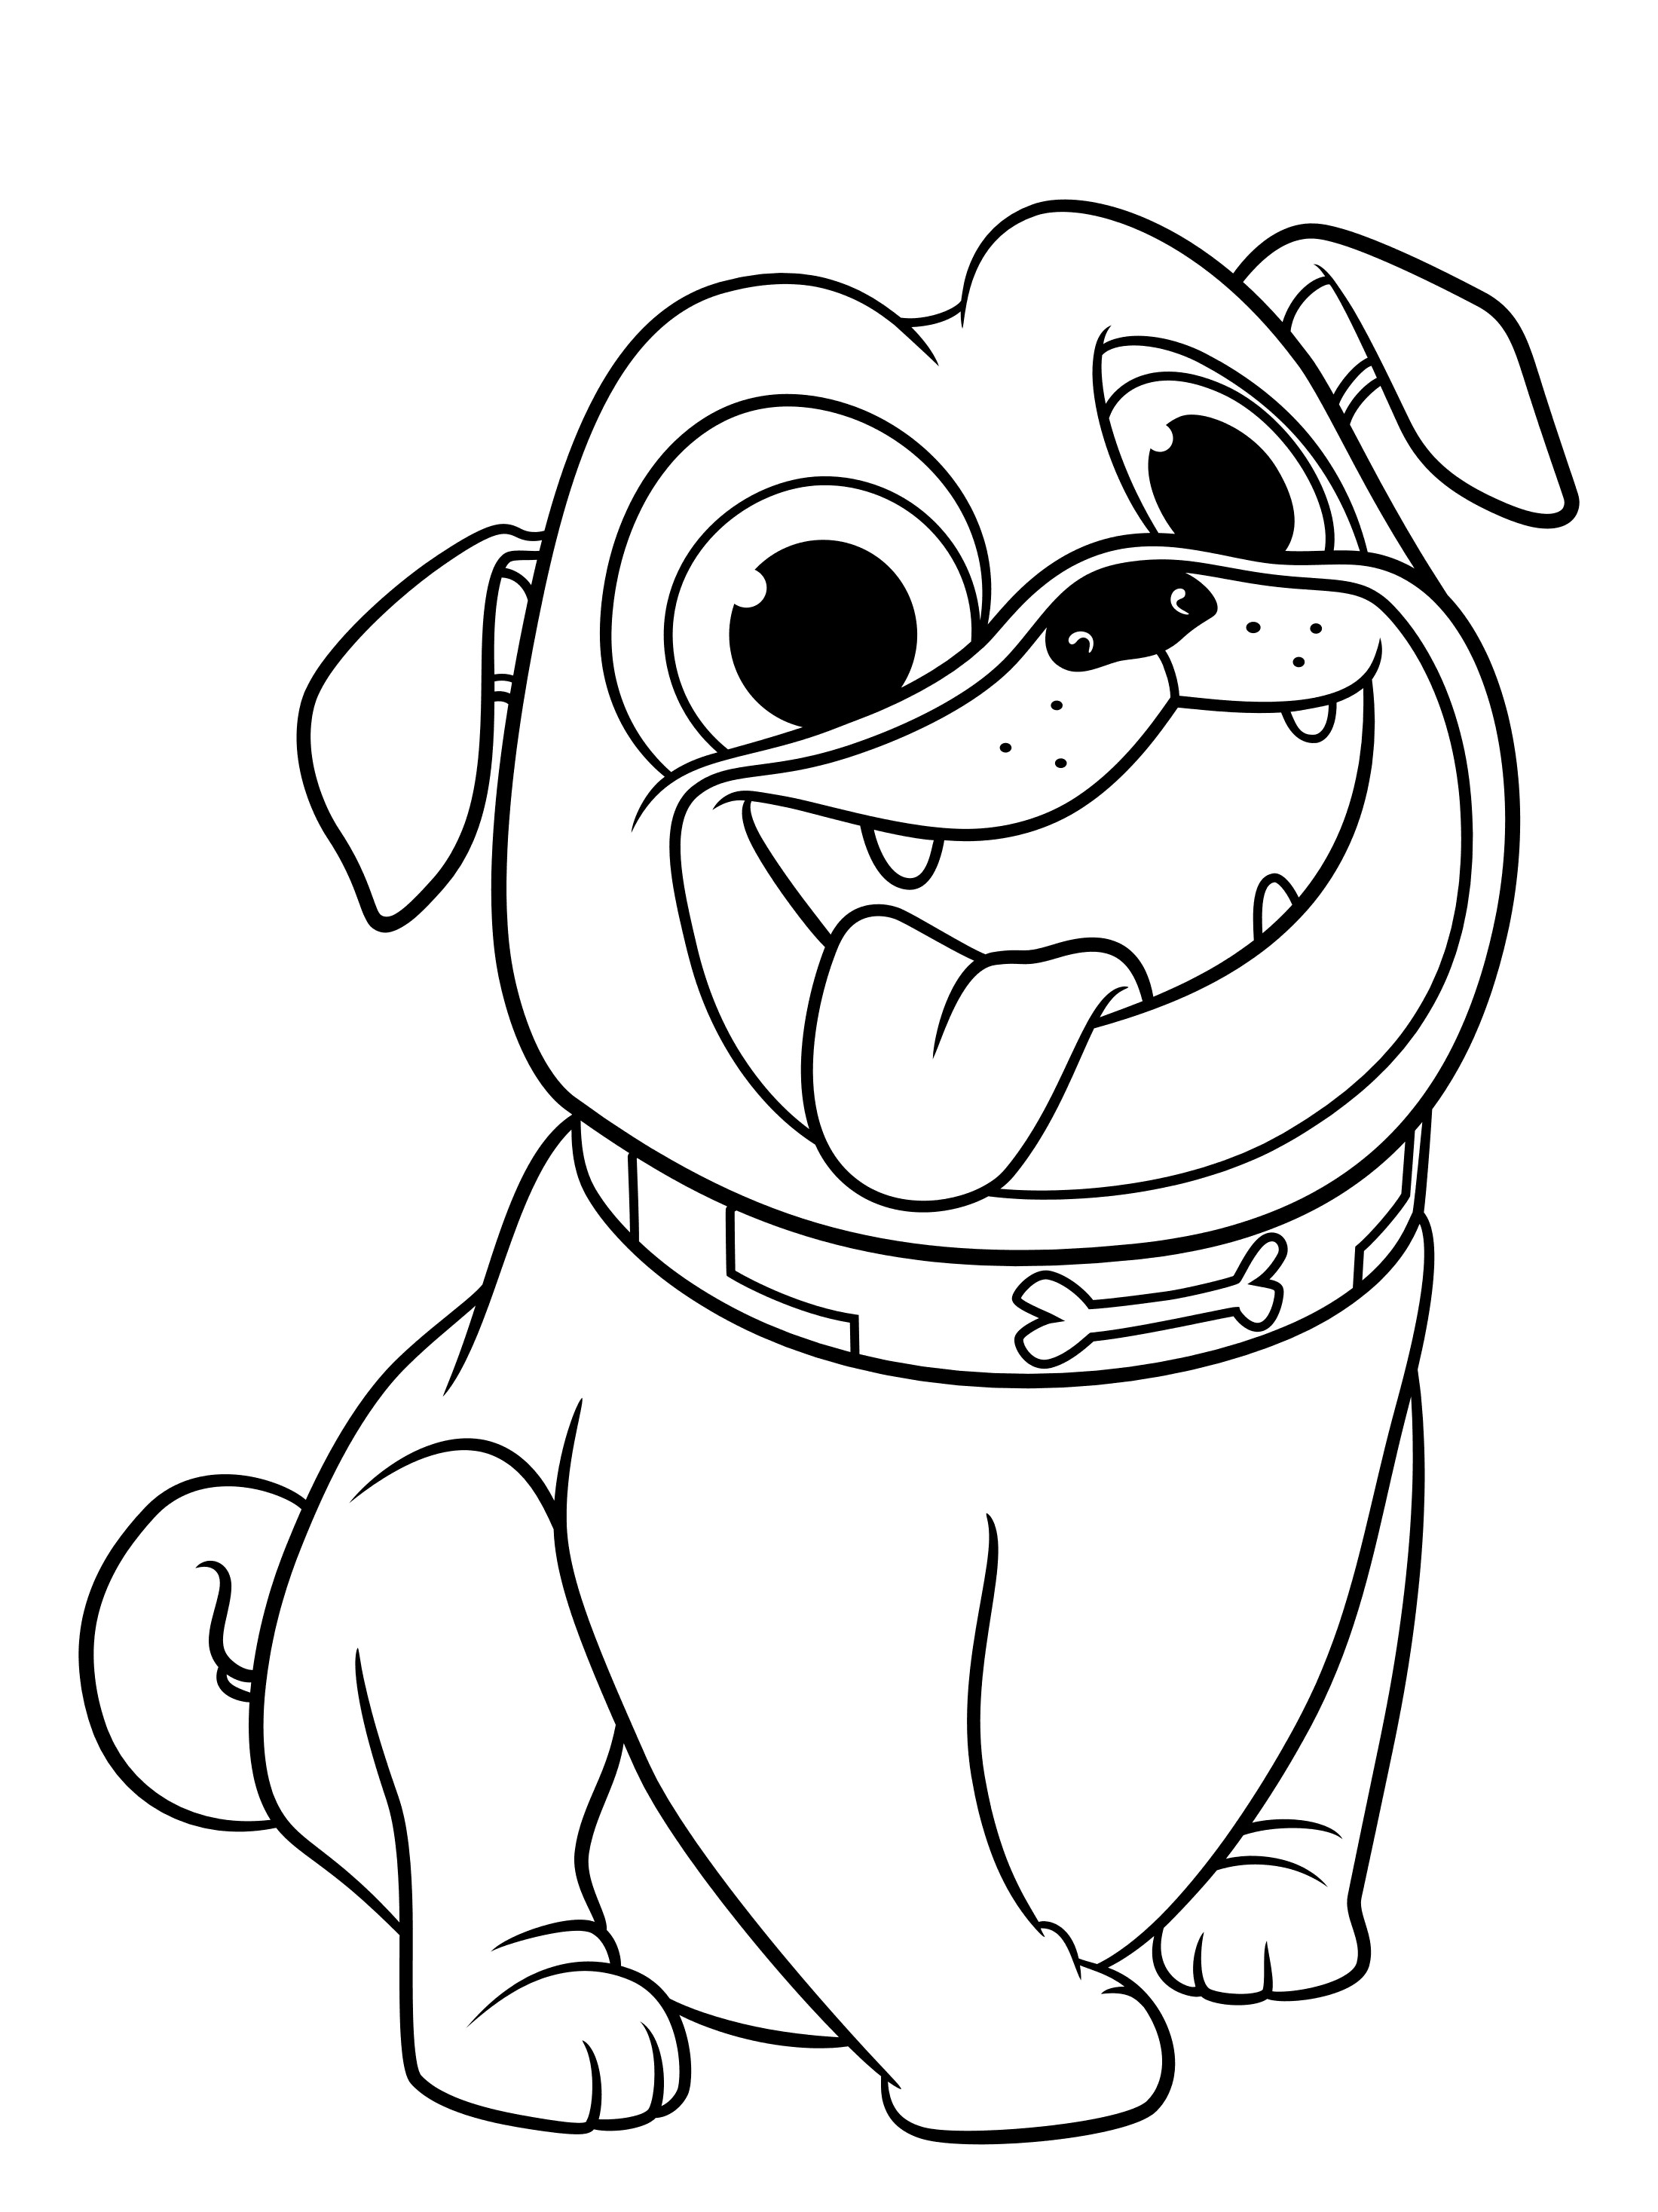 dogs pictures to print puppy dog pals coloring pages to download and print for free dogs to pictures print